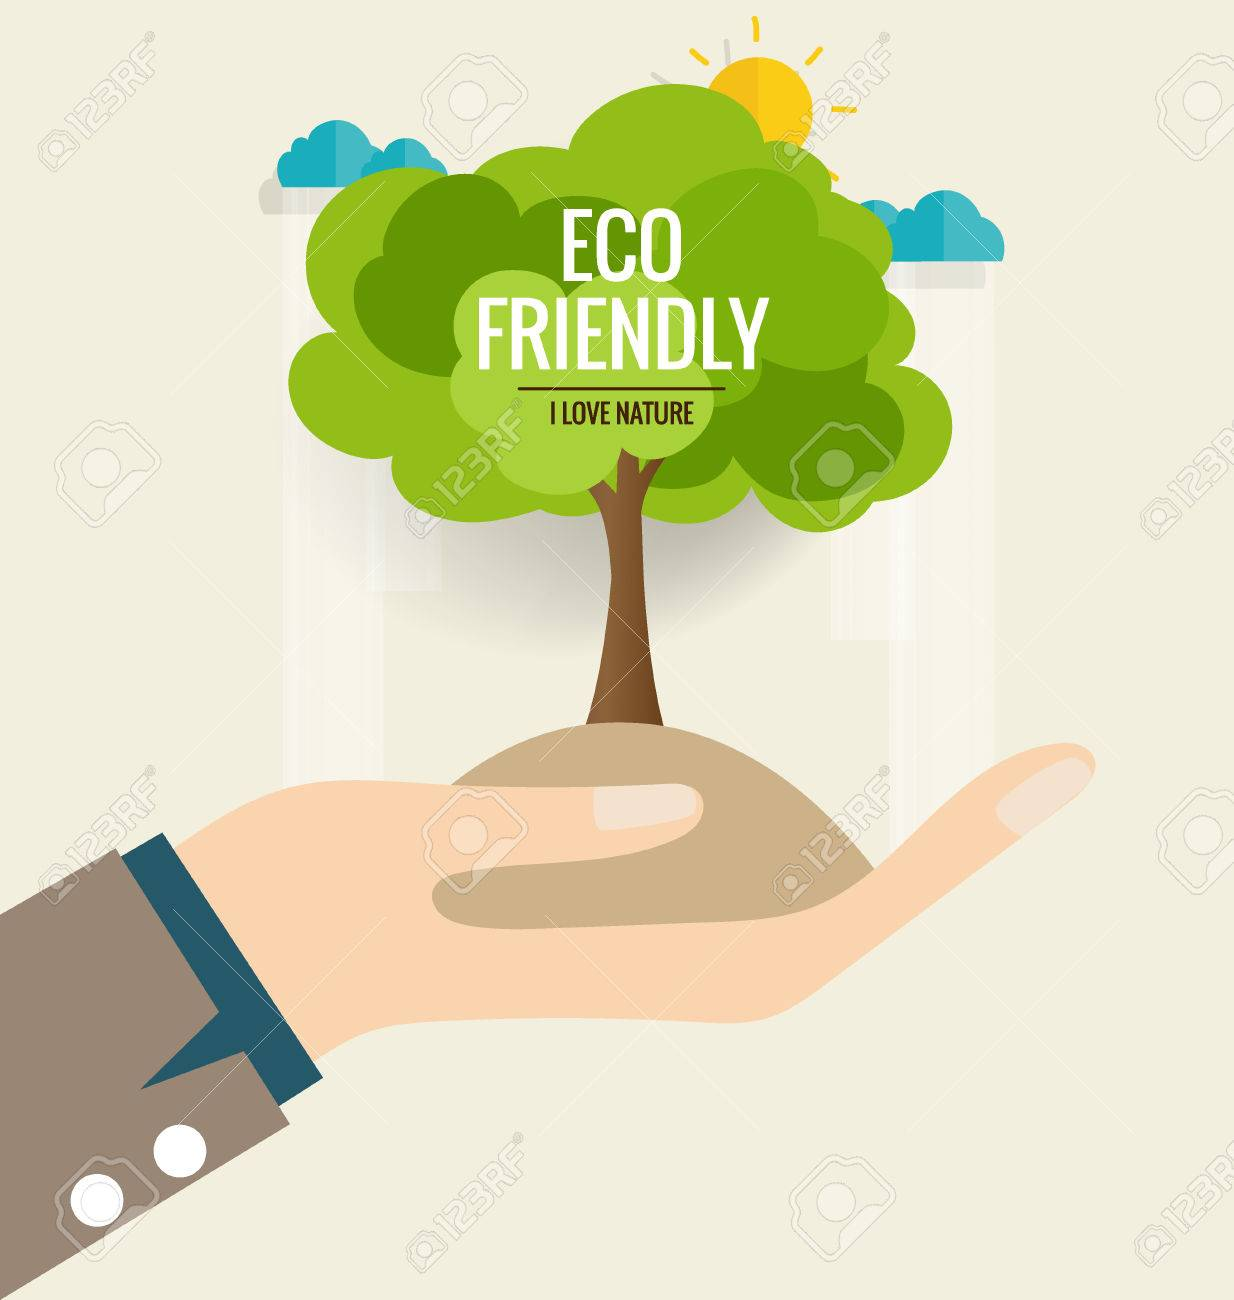 ECO FRIENDLY. Ecology concept with hand and tree background. Vector illustration. - 44305951